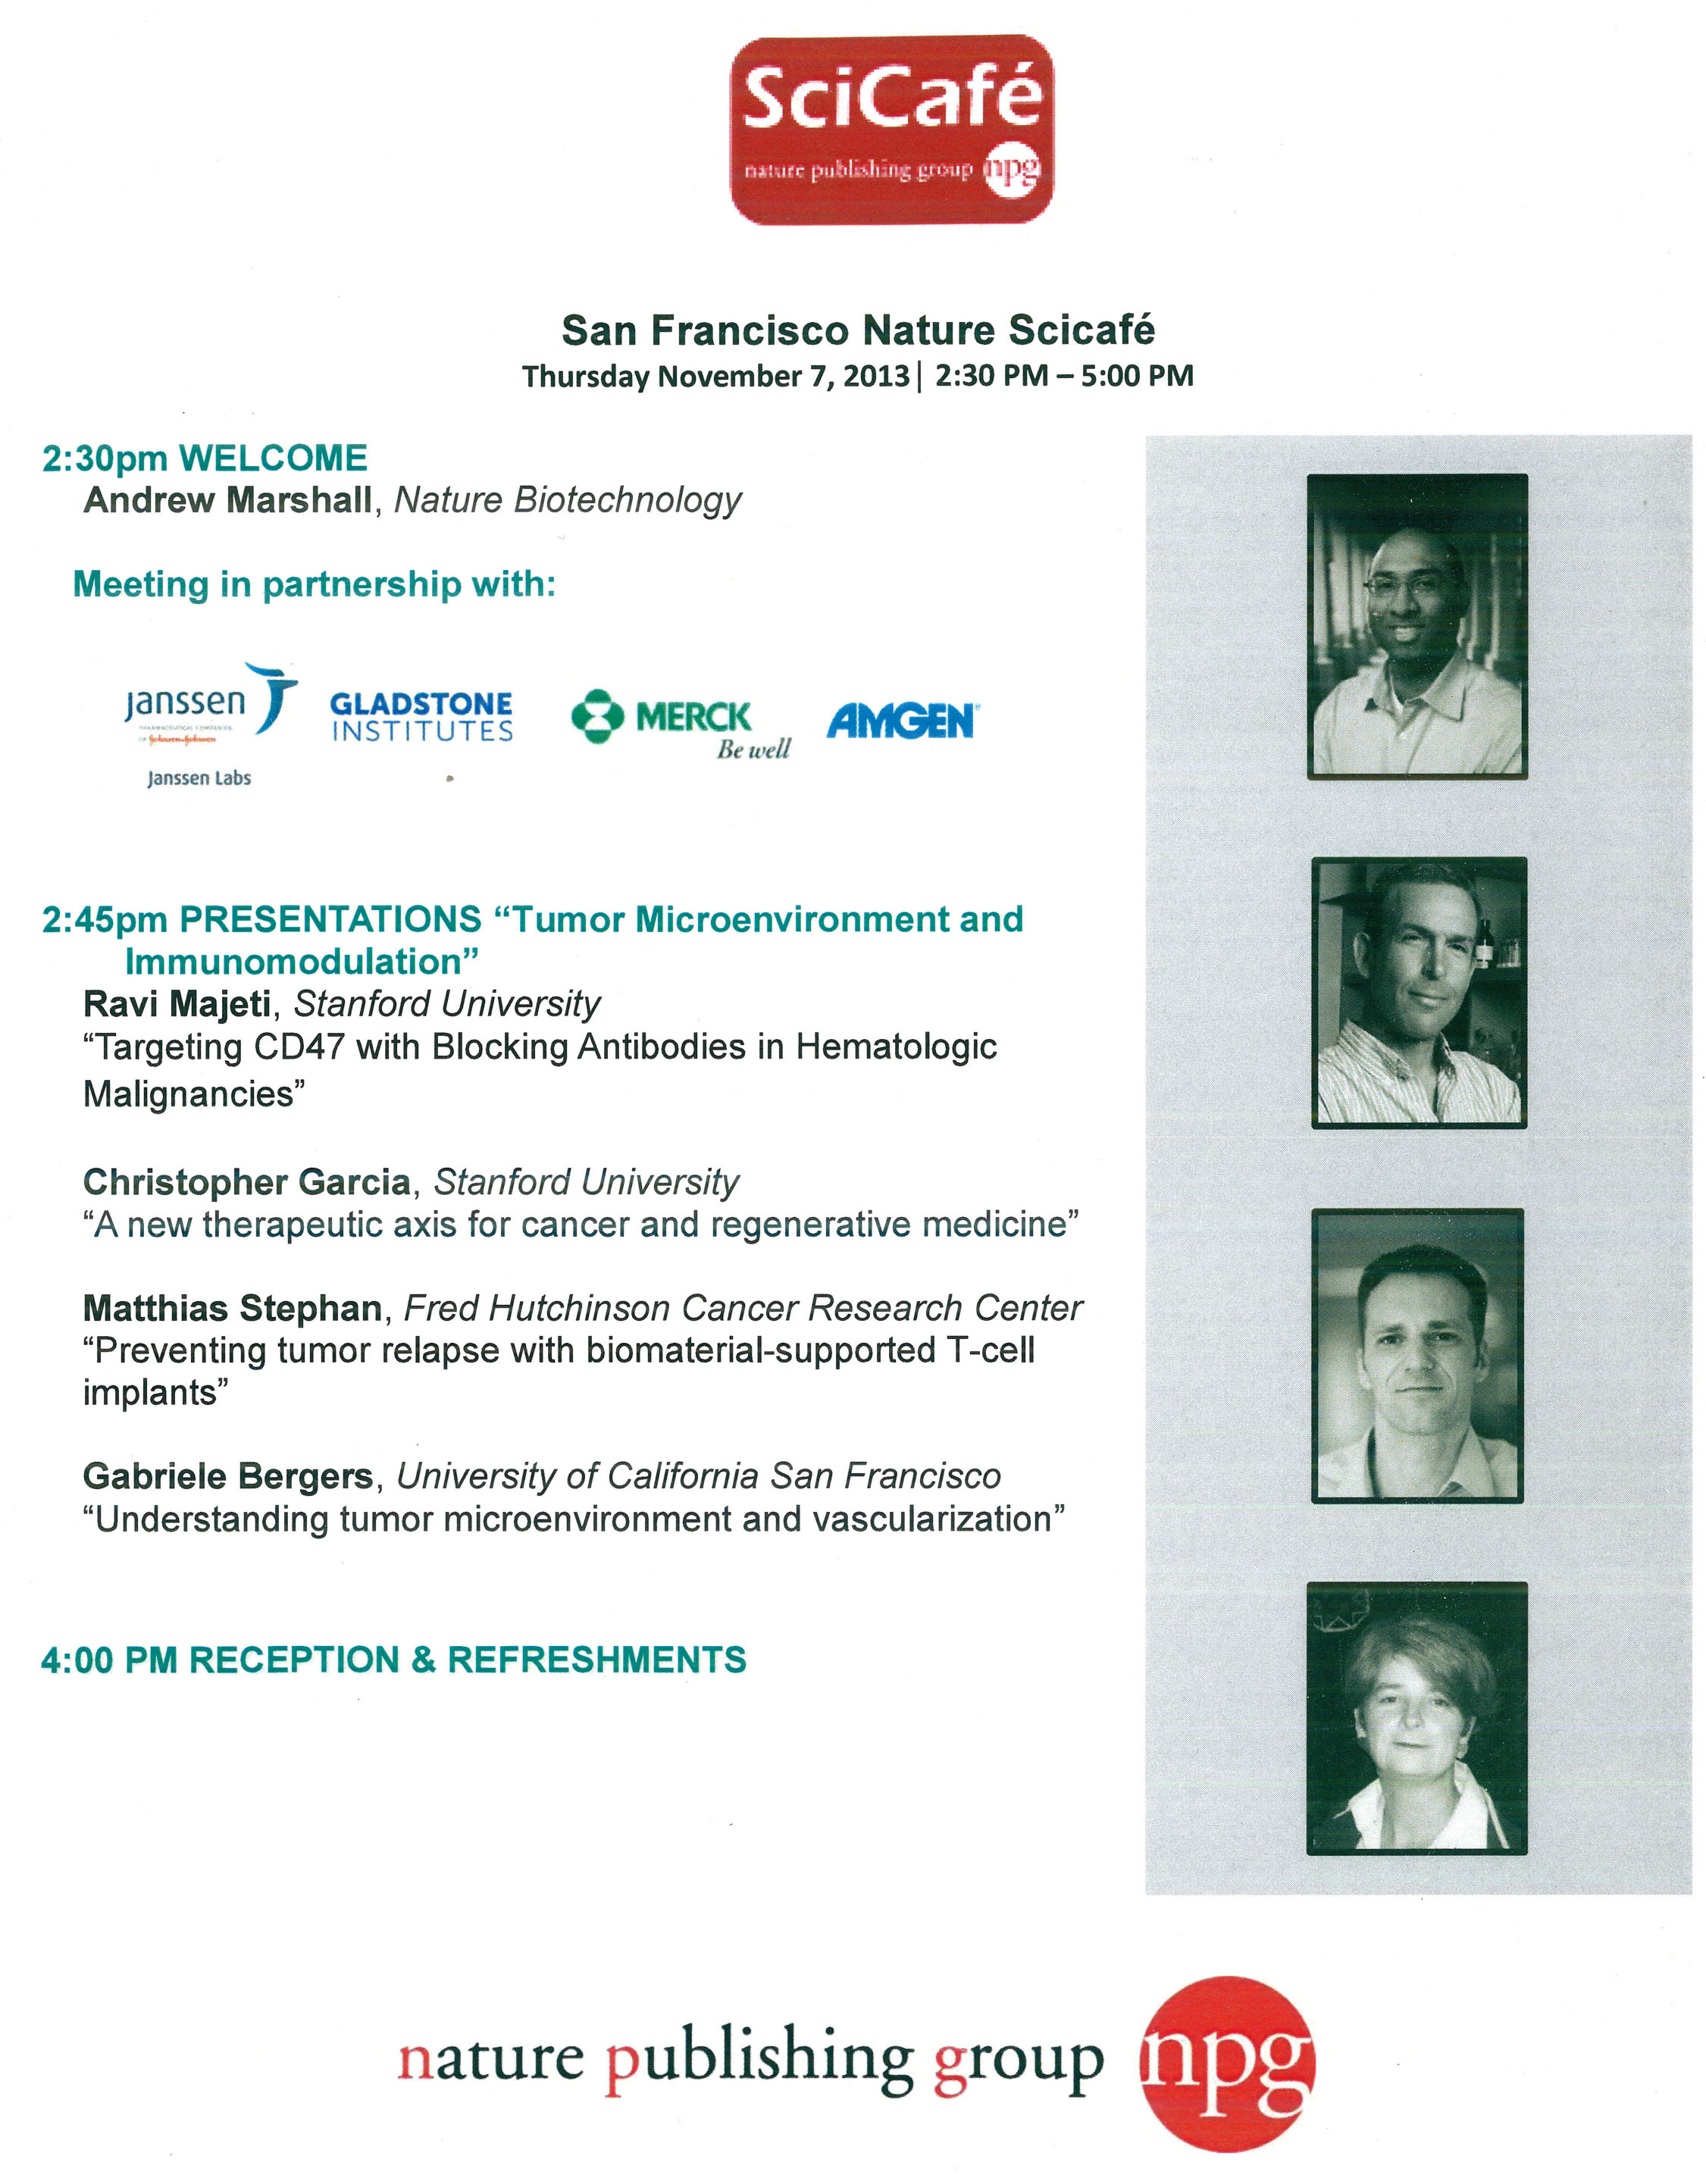 November 7, 2013. The Stephan lab was invited to present their work on biomaterial-supported T-cell implants at the Nature Scicafe event in San Francisco. This exclusive scientific forum that operates on an invitation-only basis and is hosted by the editors of Nature Biotechnology and Nature Medicine. This event provides the participating scientists with new connections and insight from the business audience regarding the potential commercialization of their work.